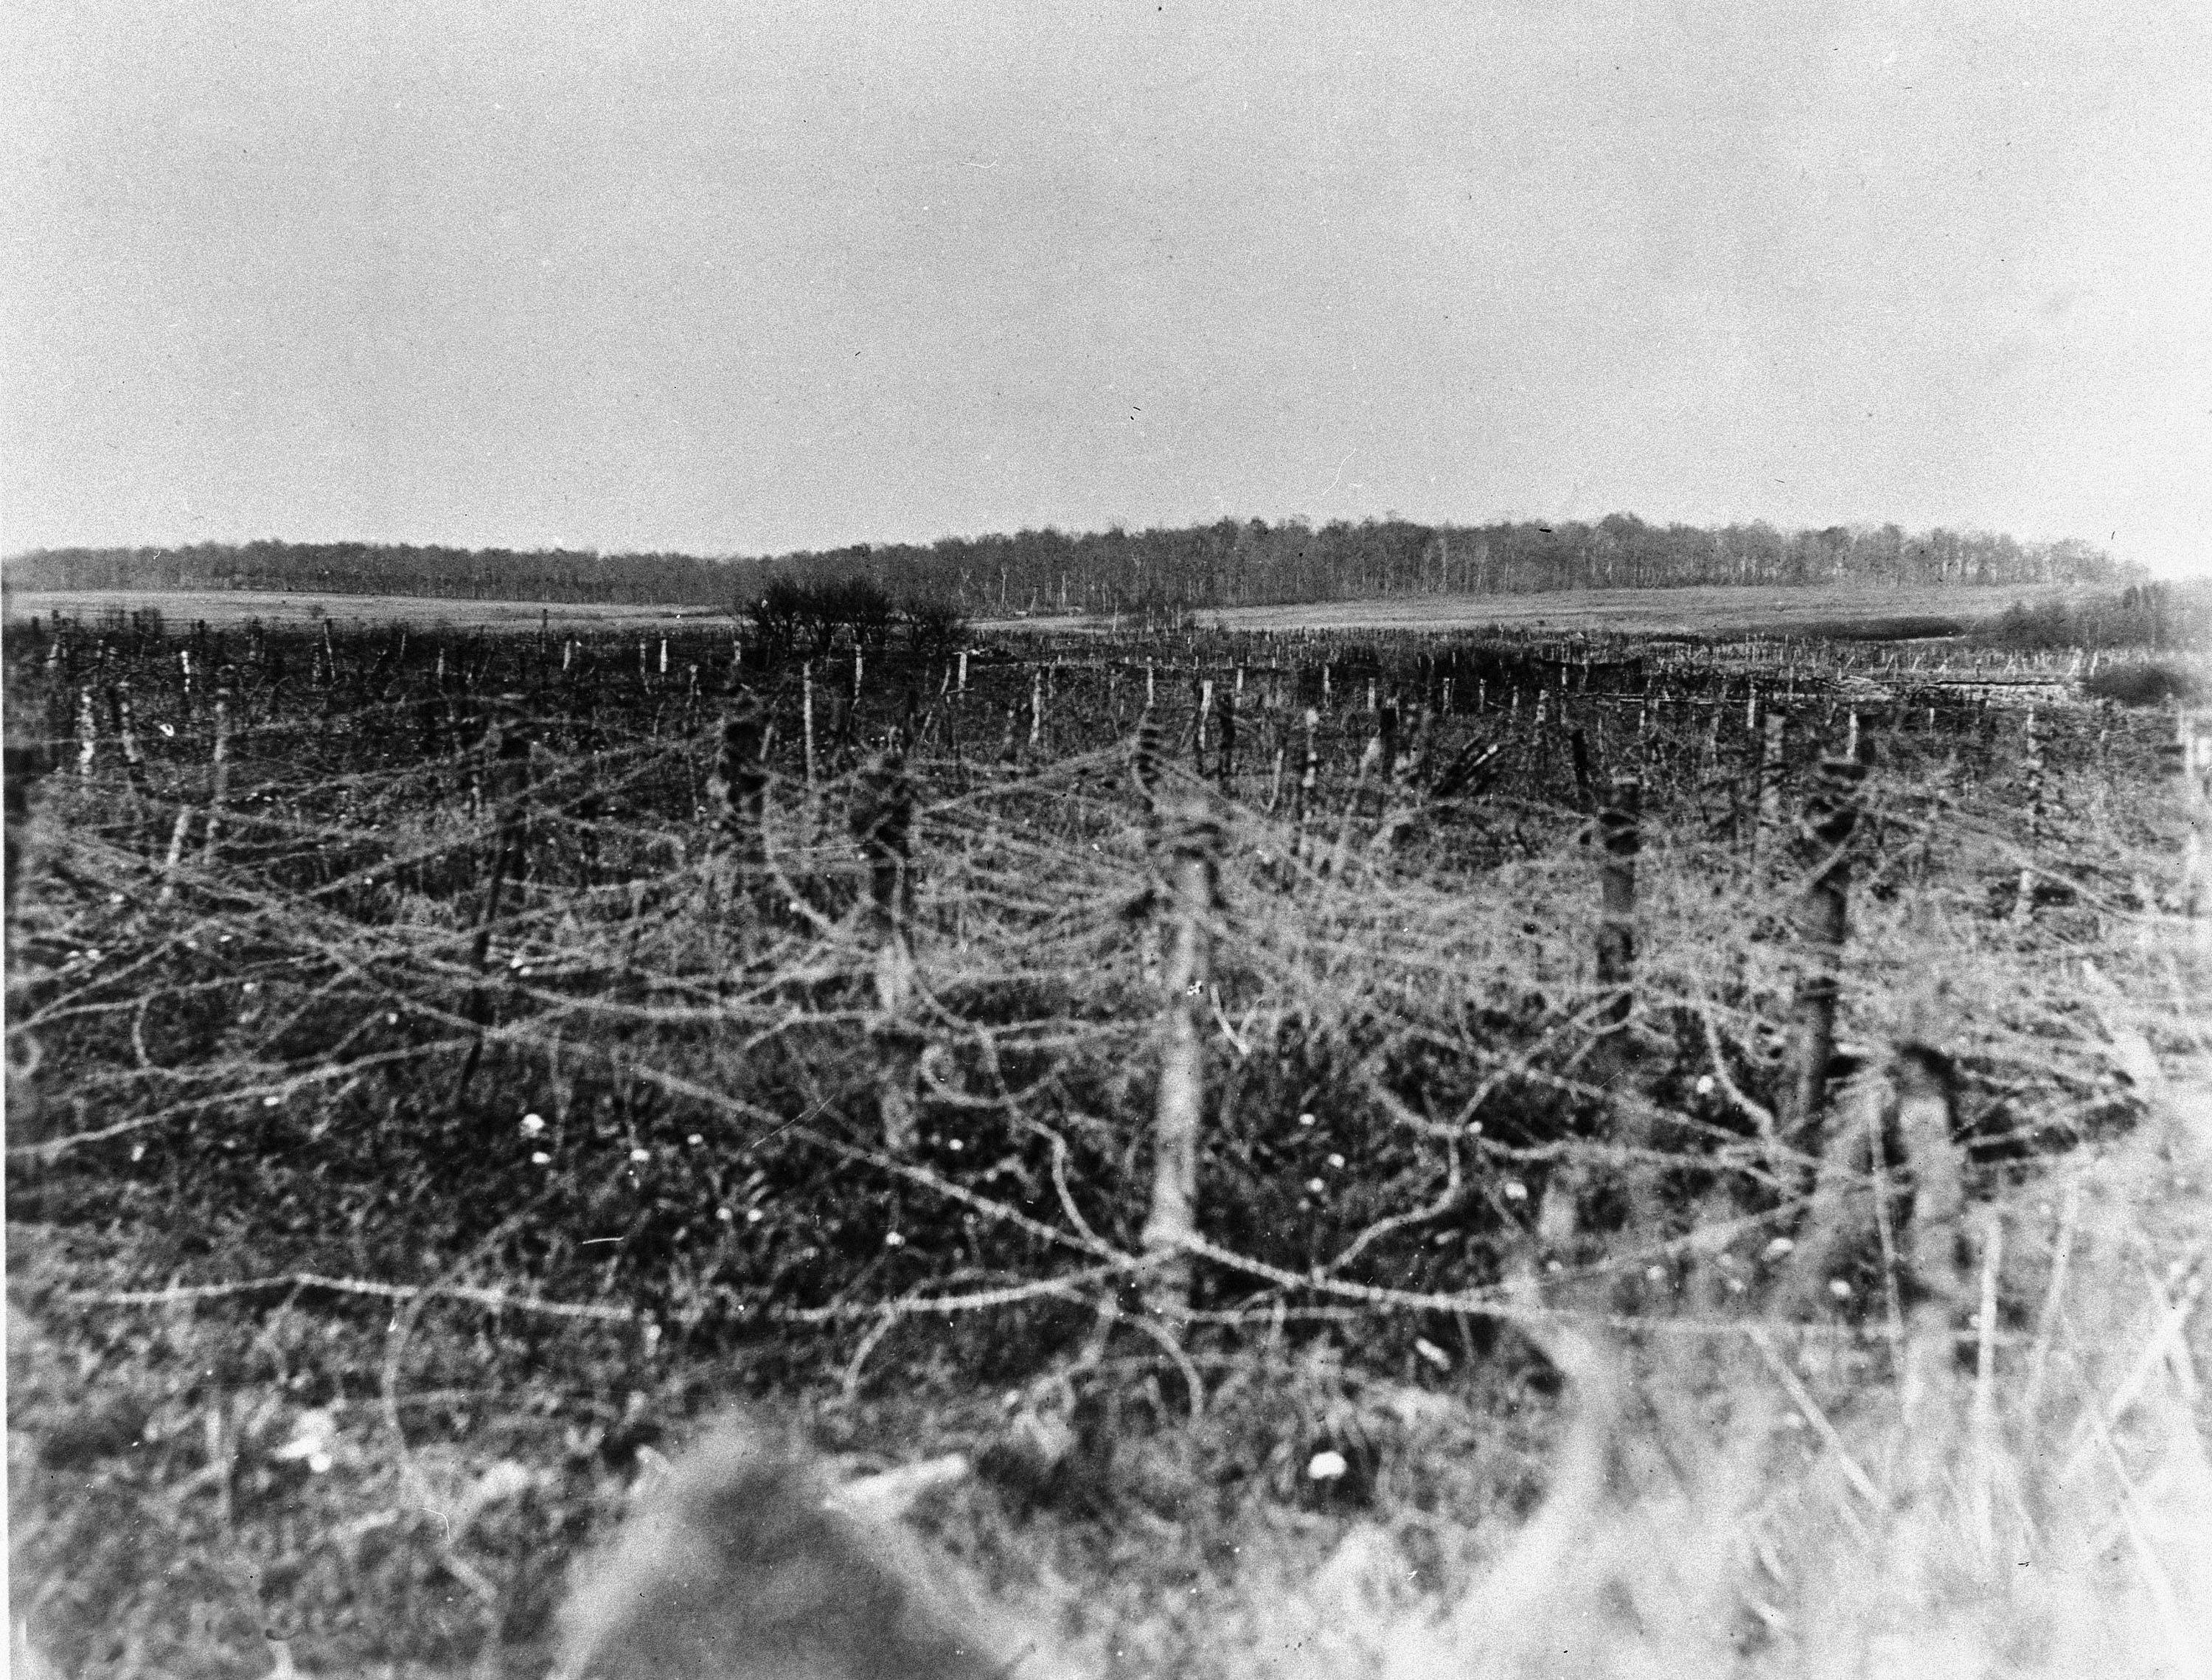 83 OF 100: In this April 25, 1918, file photo, a field of barbed wire in a no-man's land near Ancerviller, France, during World War I. The area was a sector of the 2nd Battalion, 165th Infantry.